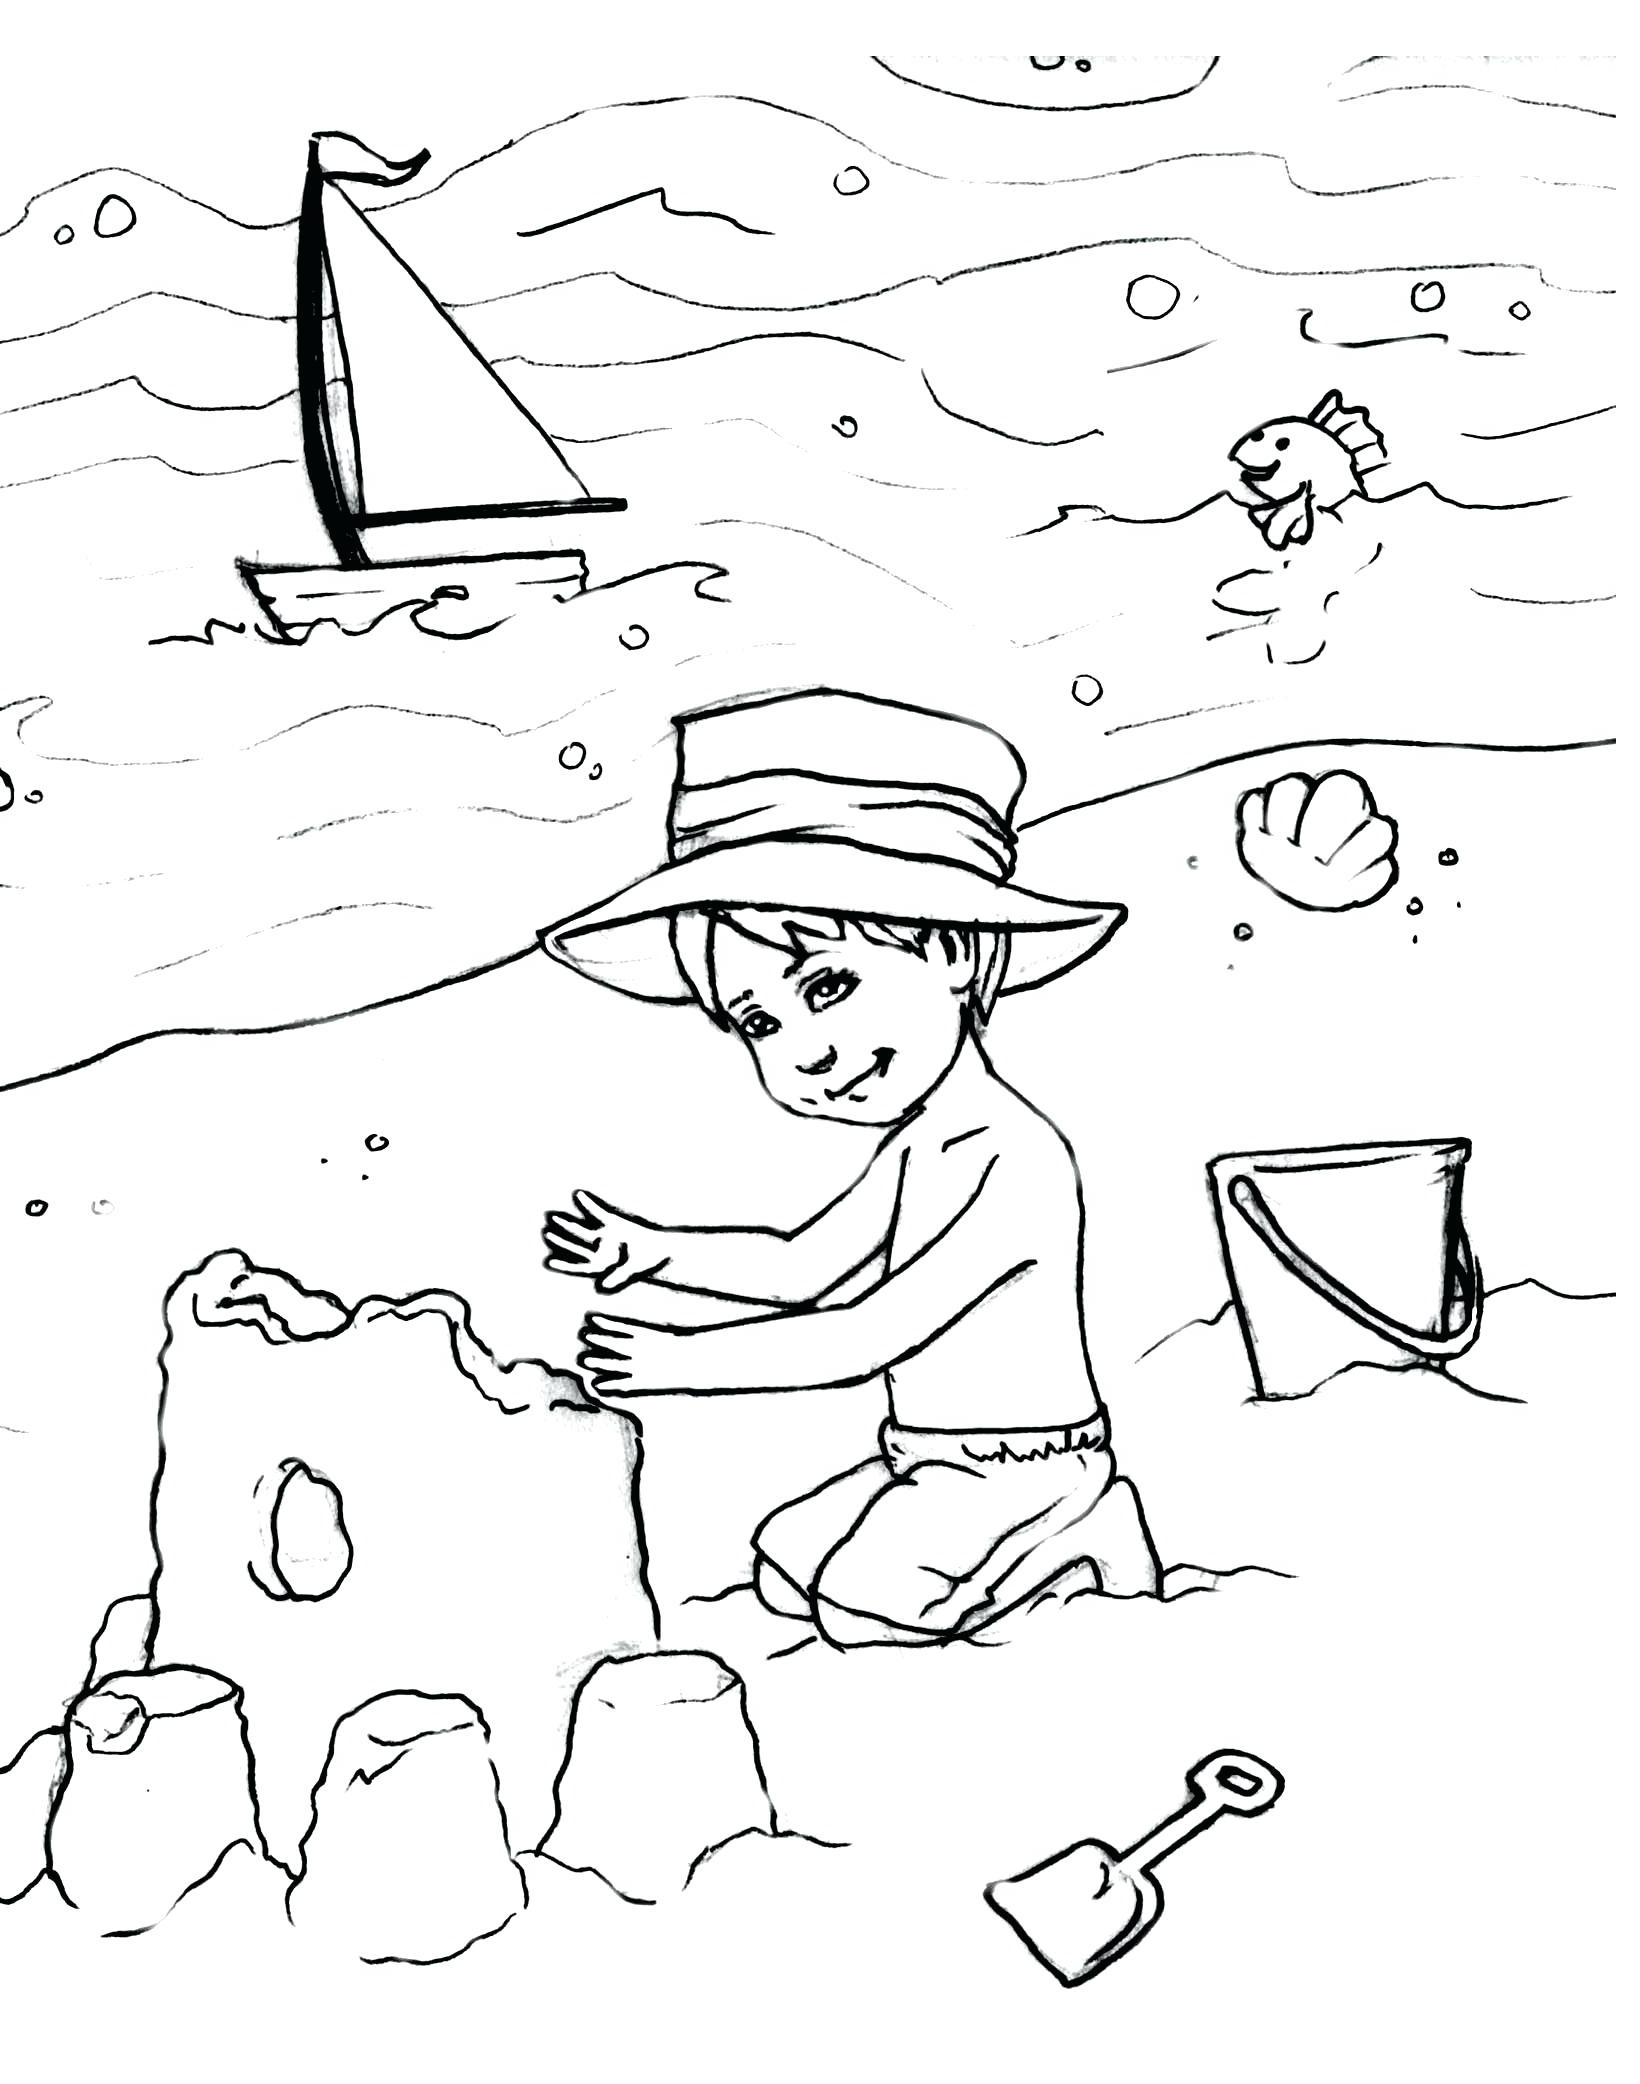 A Boy Building A Sand Castle